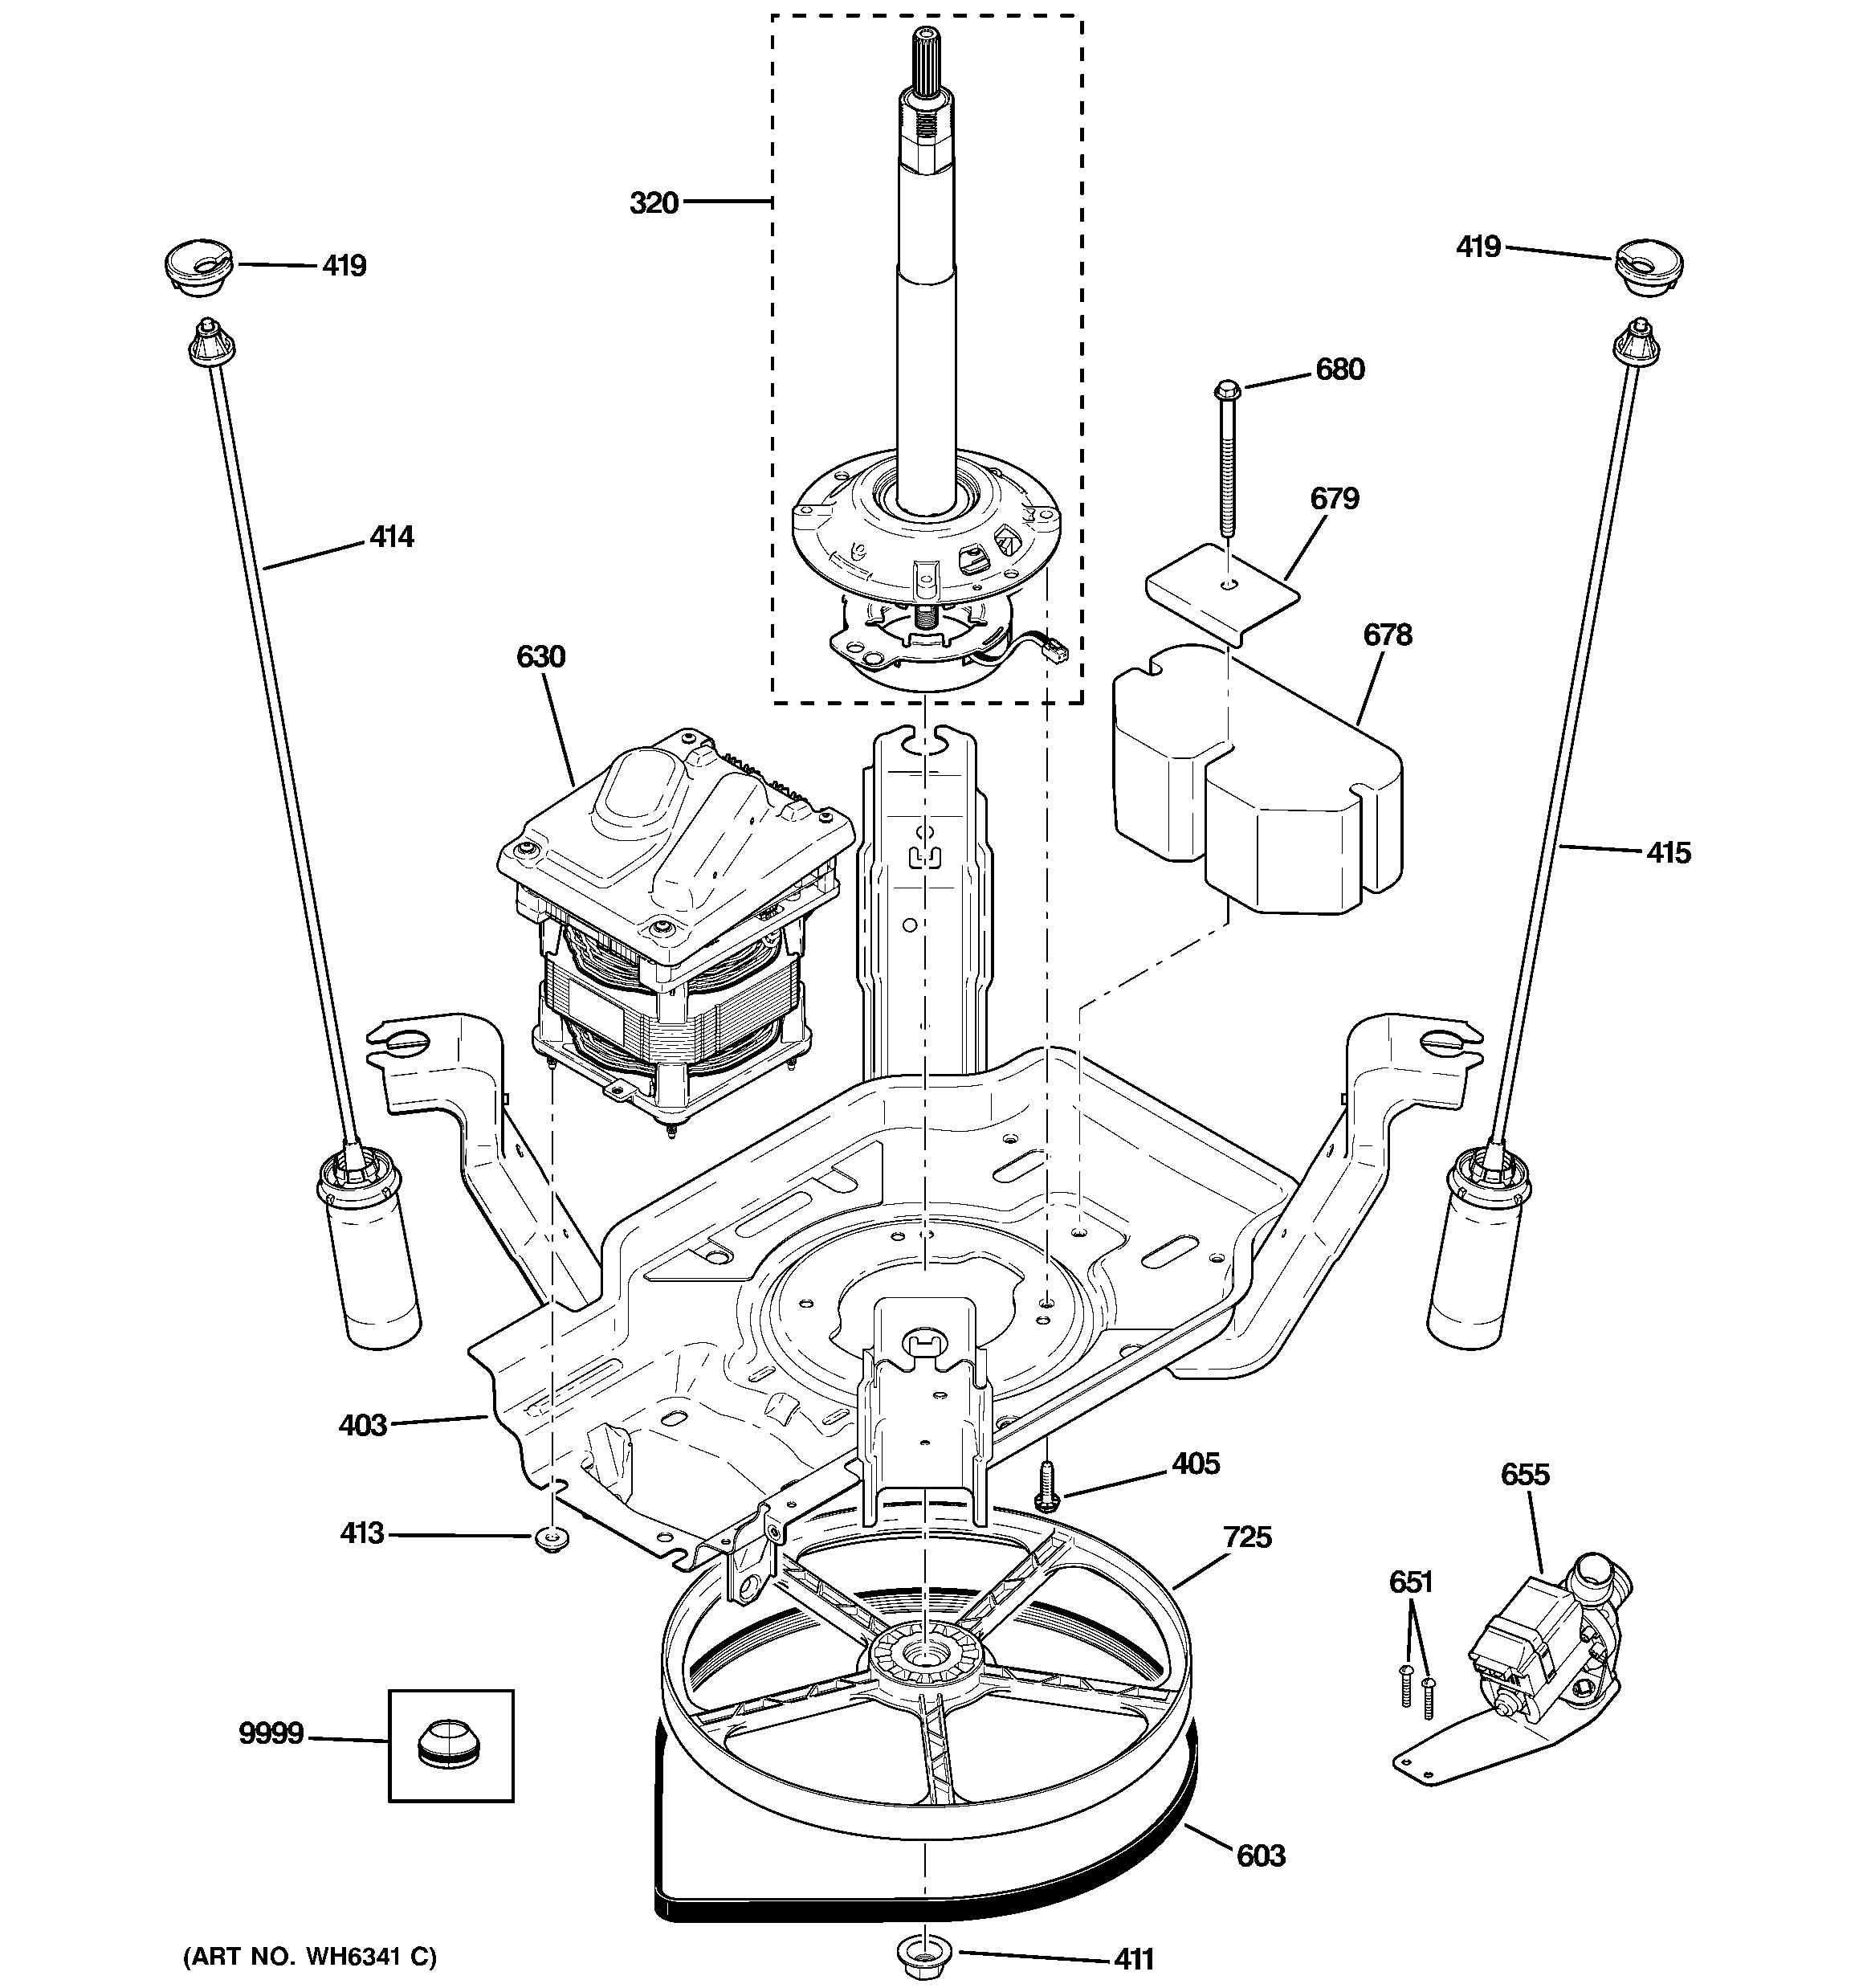 Coleman Stove Parts Diagram Ge Model Wwse5240g2ww Residential Washers Genuine Parts Of Coleman Stove Parts Diagram